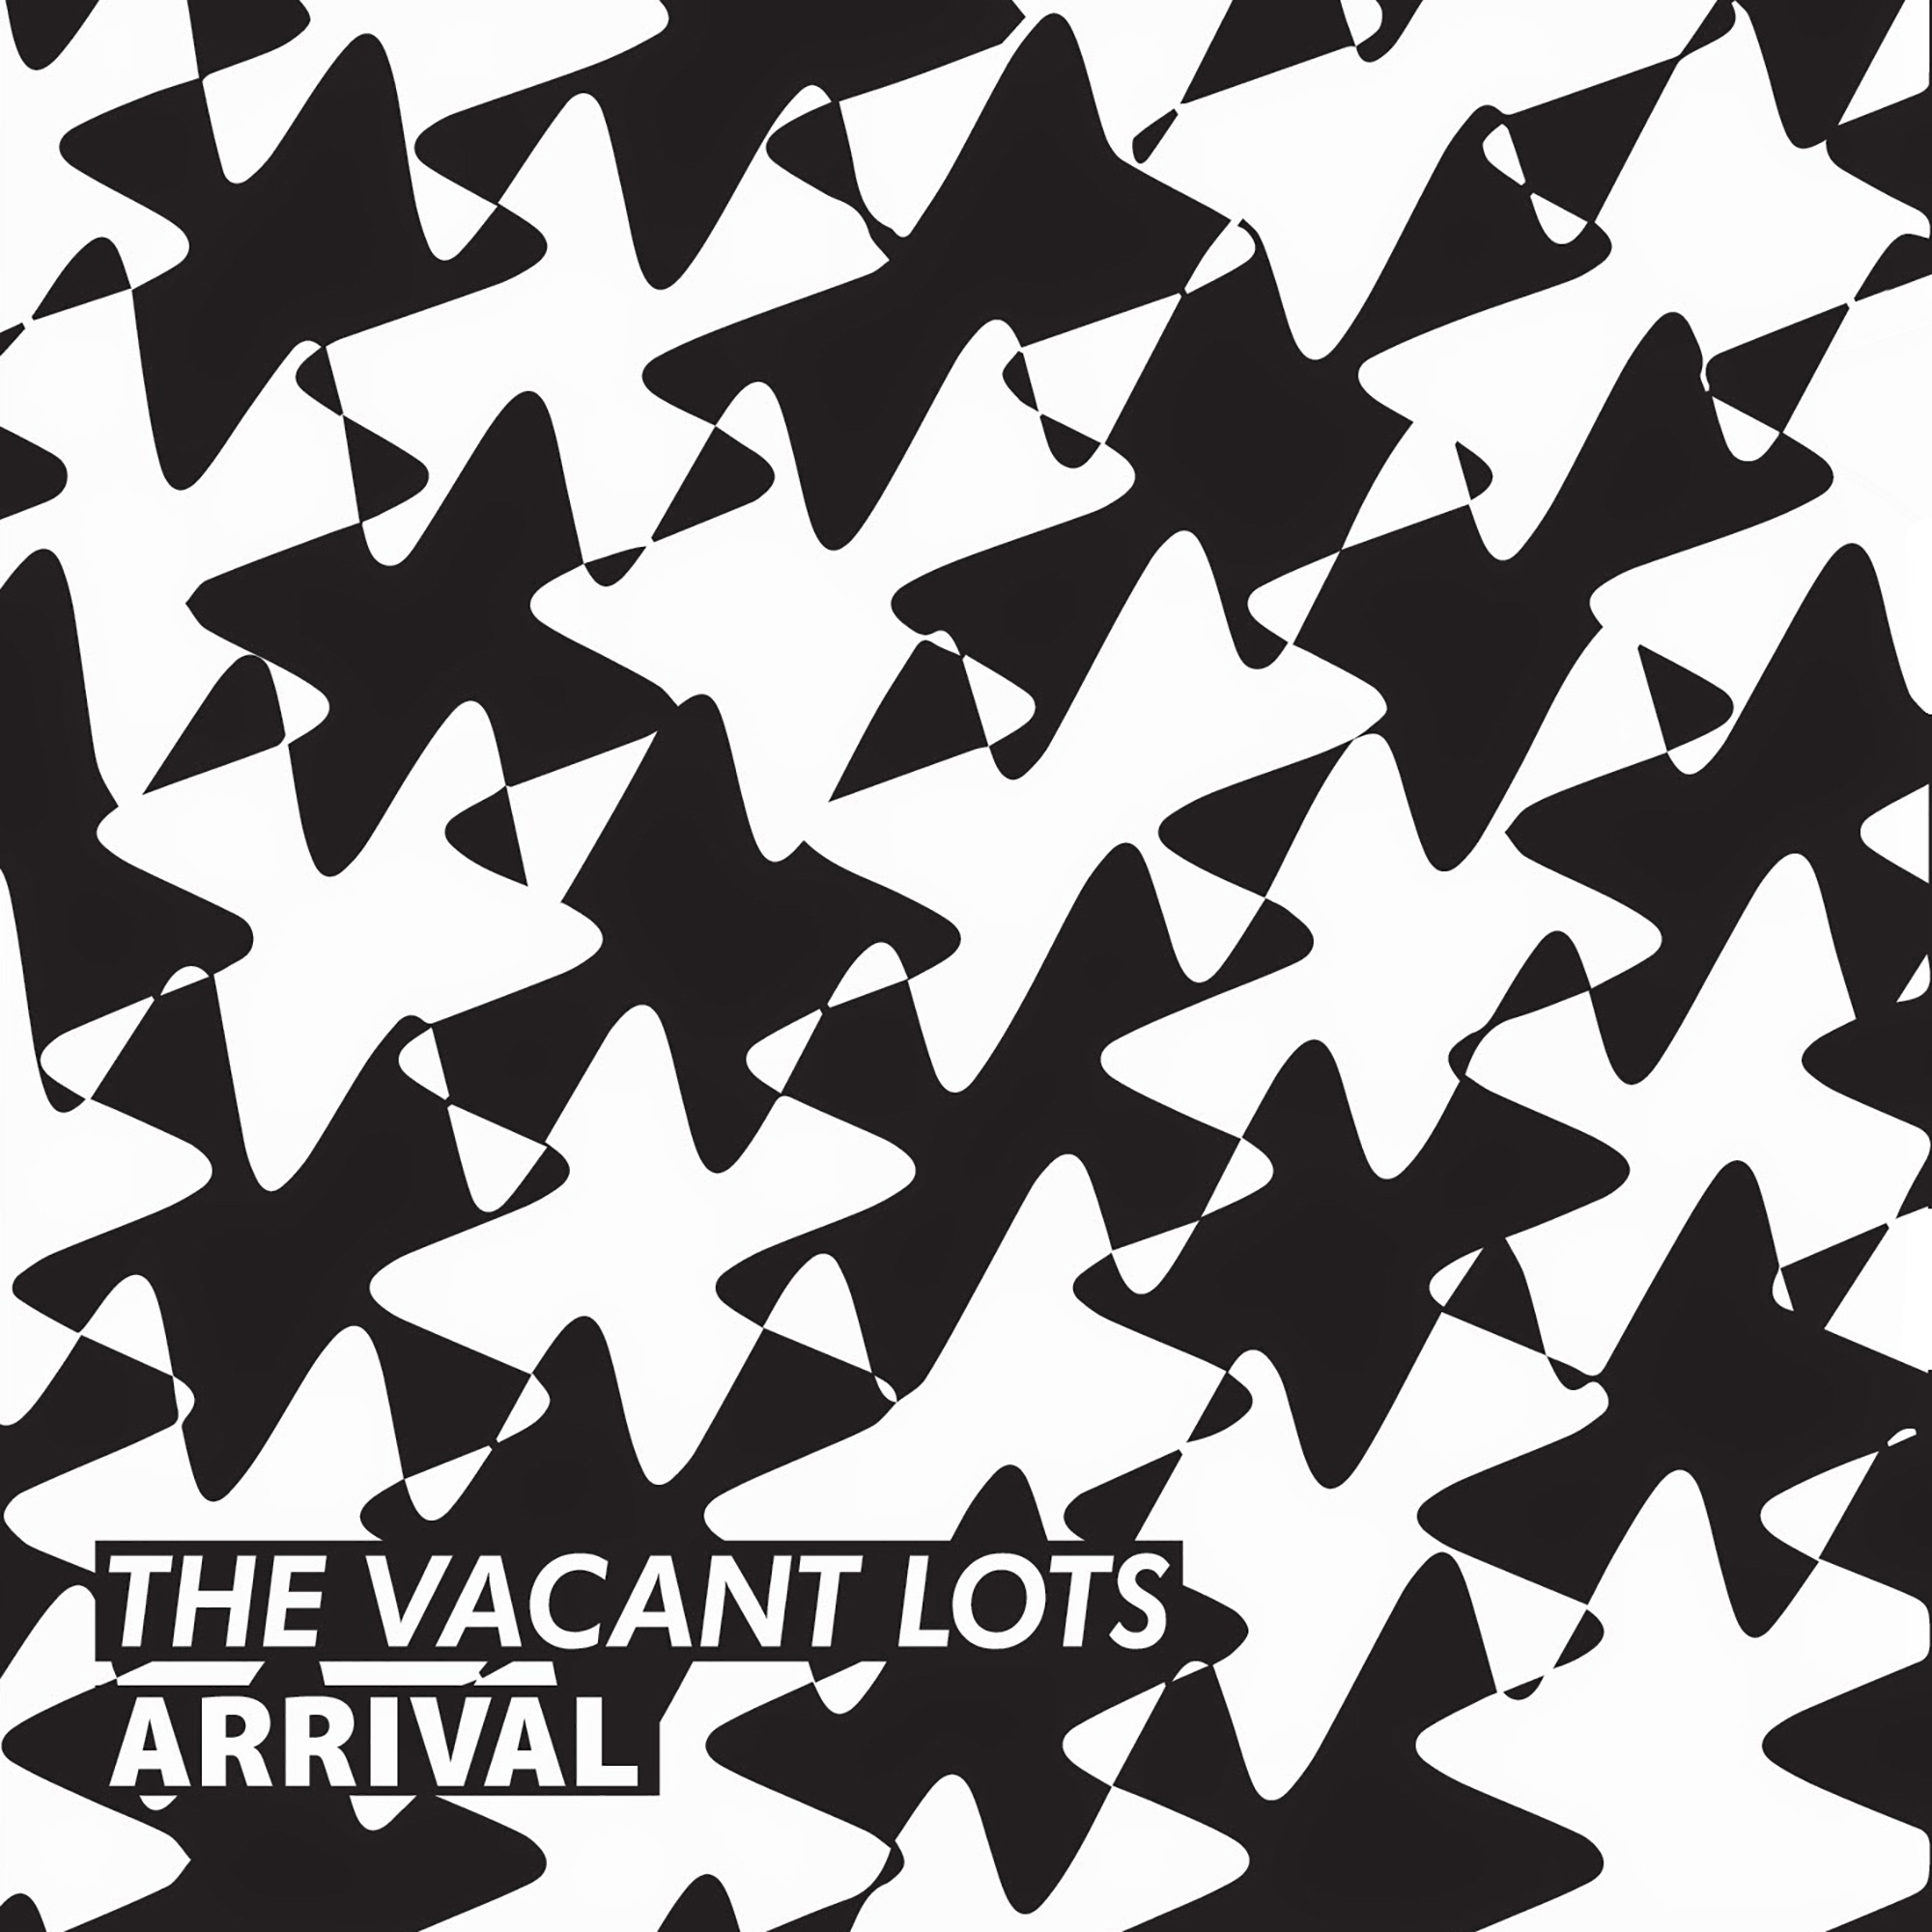 The Vacant Lots, Arrival